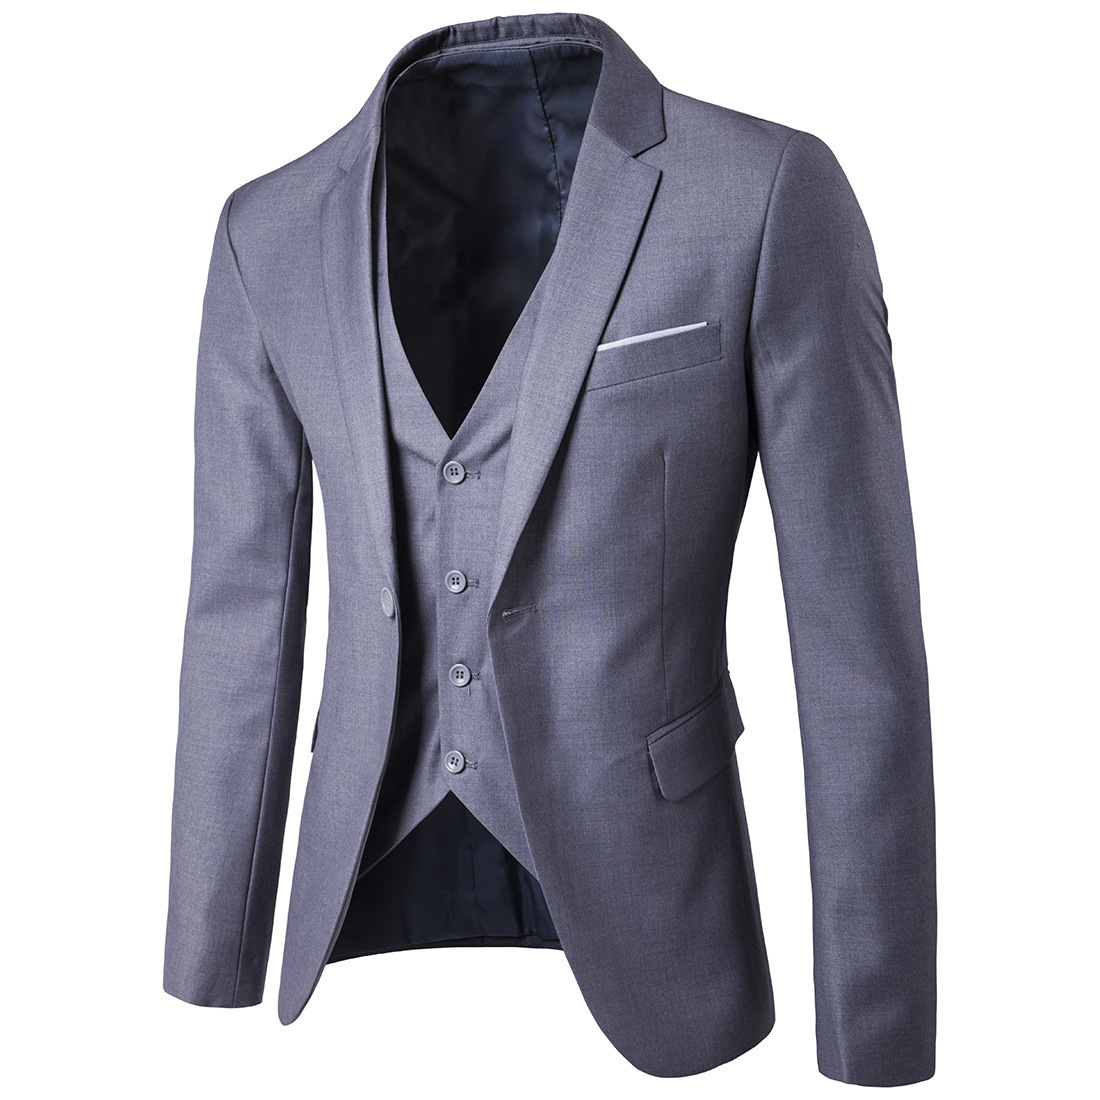 2018 Business Leisure Suit Three-piece Set Groom Best Man Wedding One-Button Suit Set Light Gray S-6xl